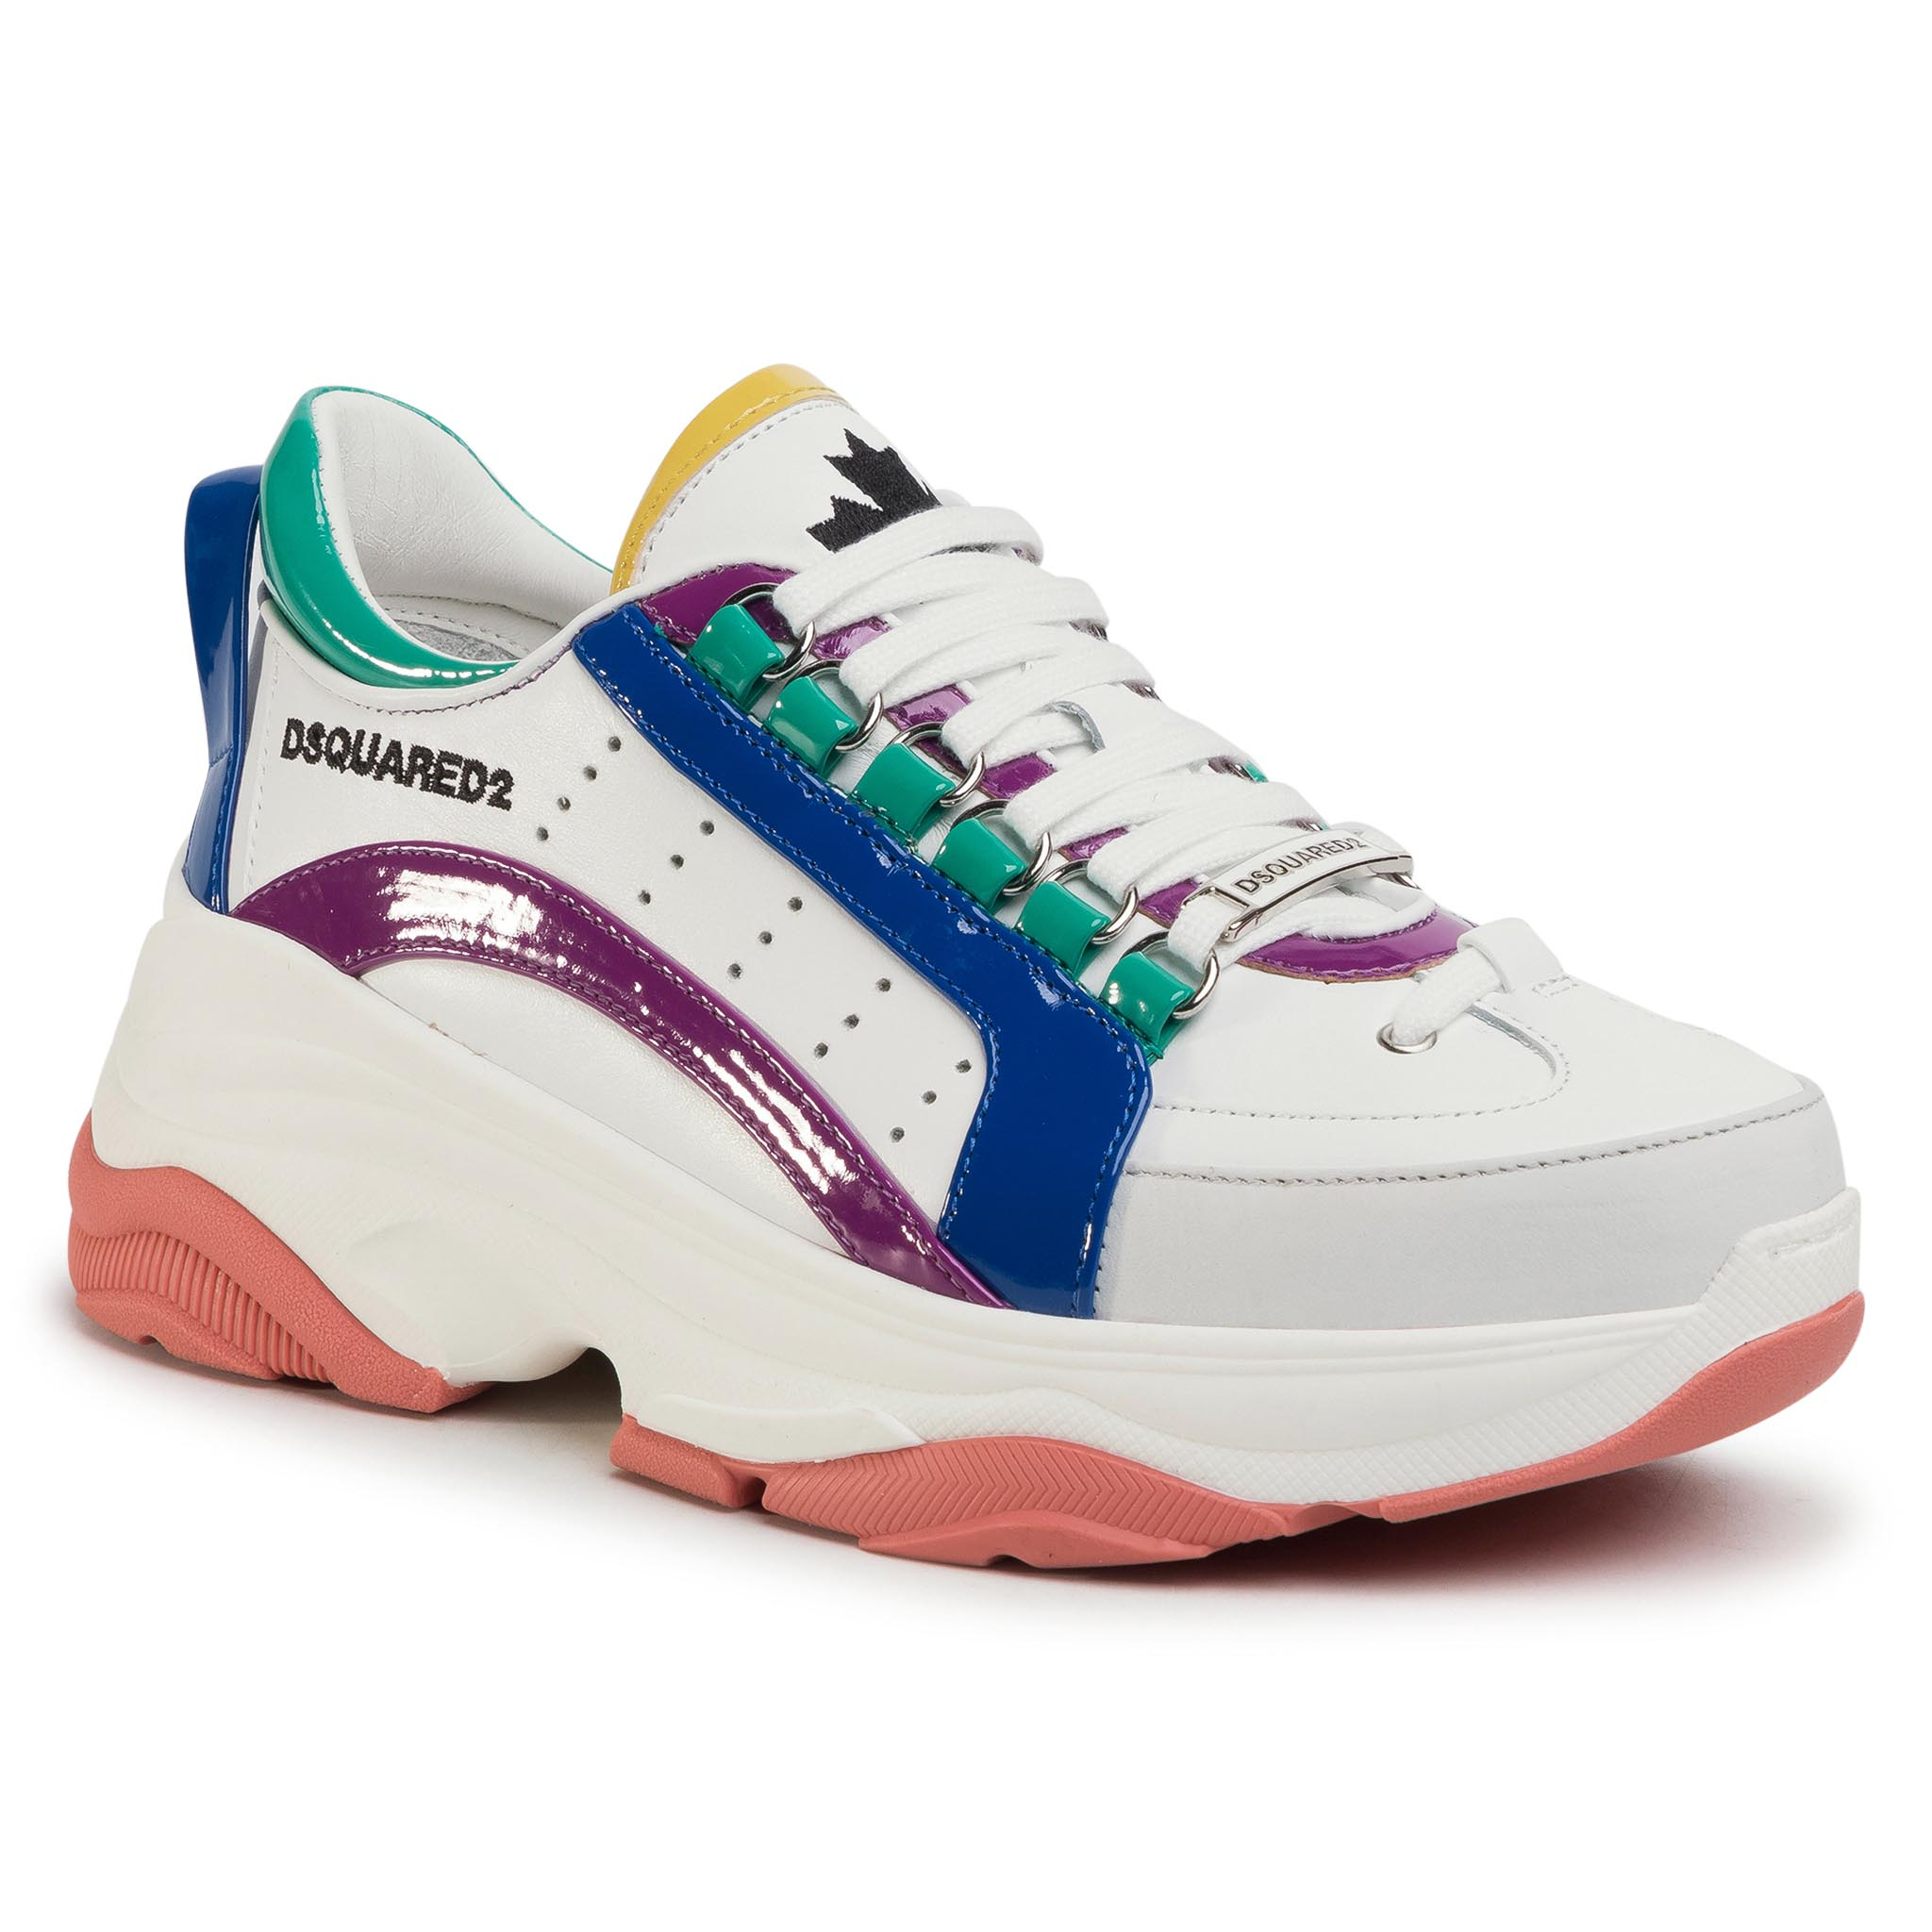 Sneakers DSQUARED2 - Lace-Up Low Top Sneakers SNW0091 01501654 M1826 Bianco/Viola/Blu